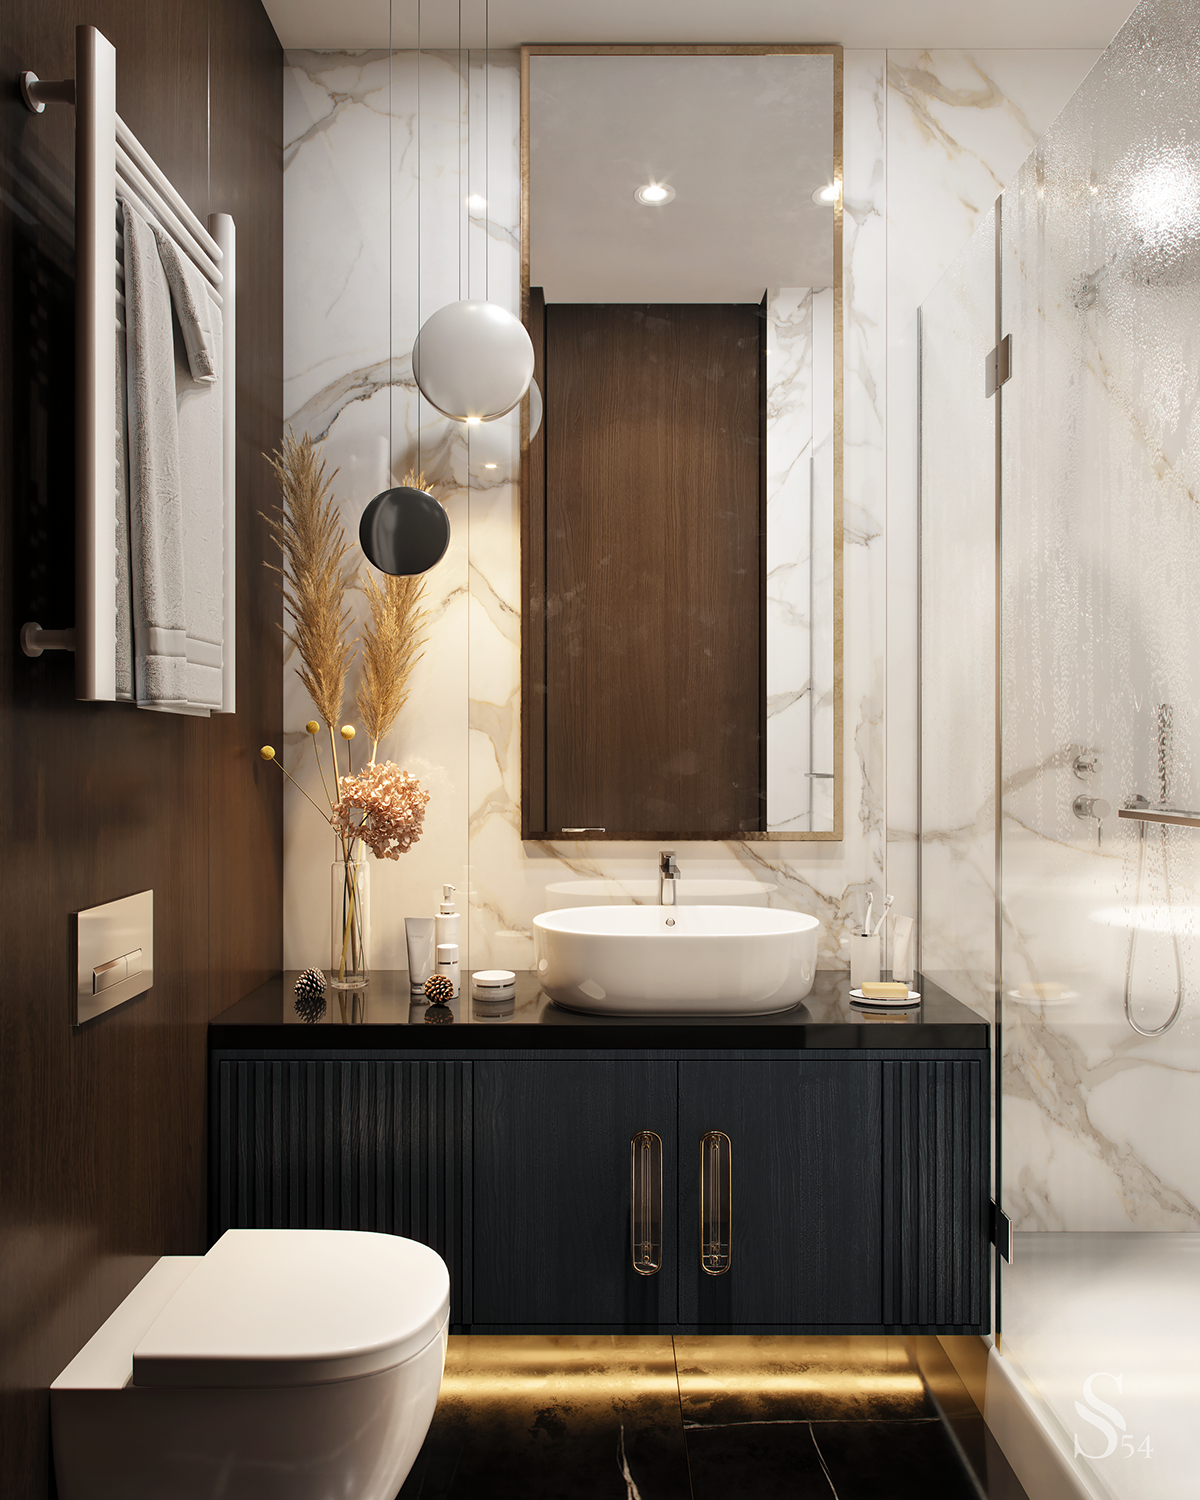 Apartment In Moscow On Behance In 2020 Bathroom Design Bathroom Interior Design Luxury Bathroom